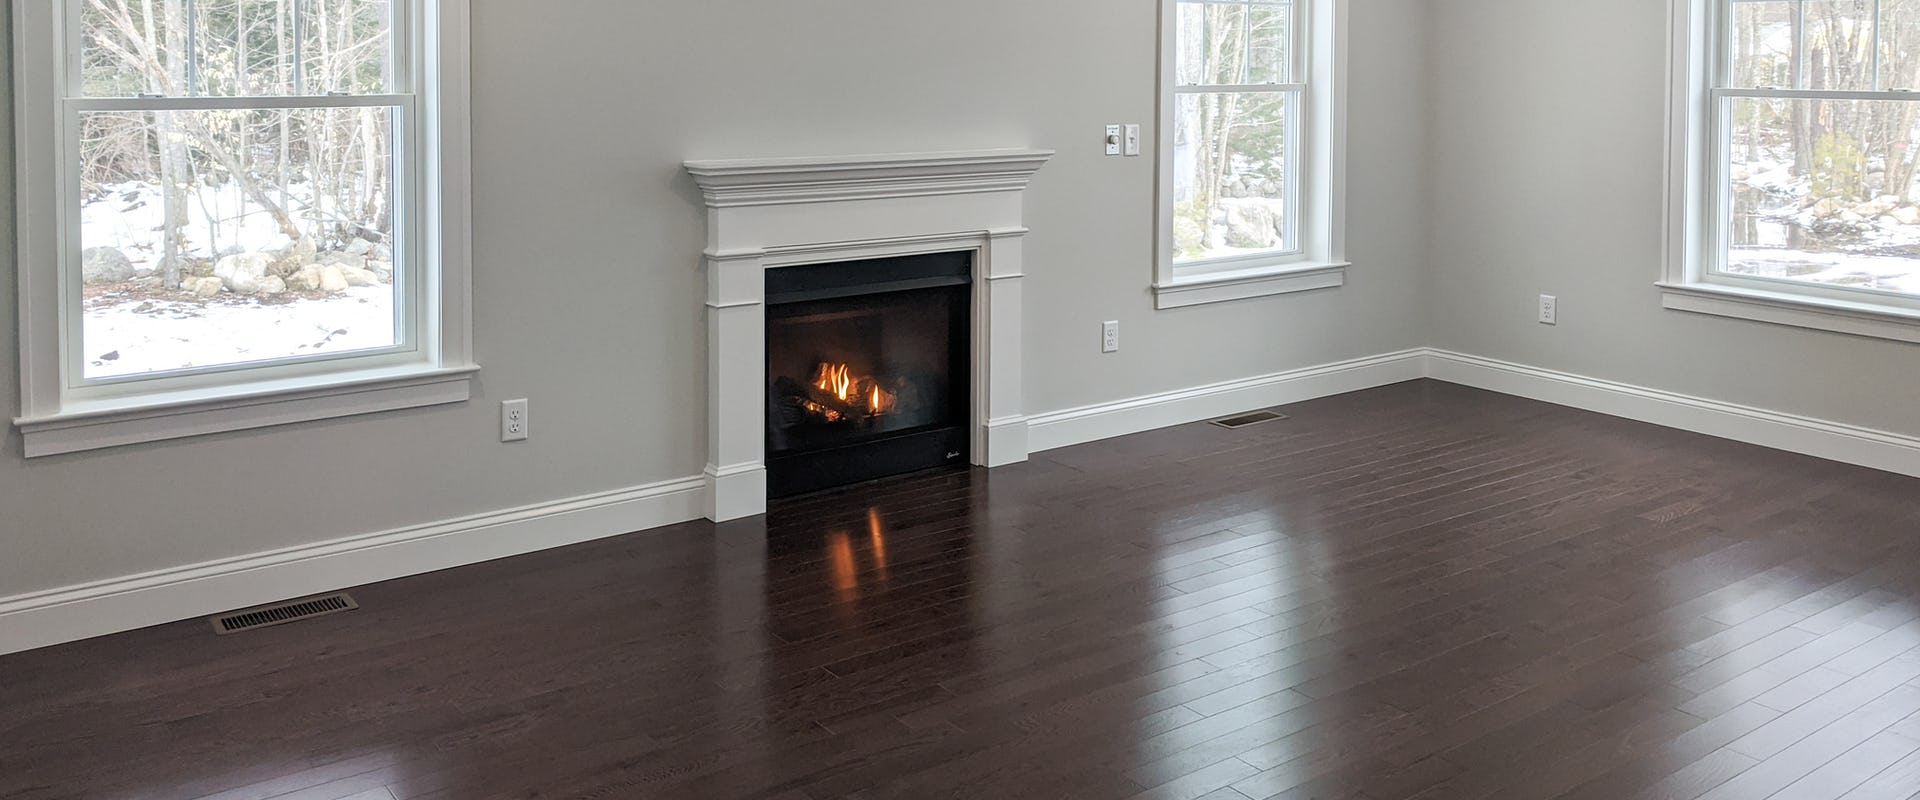 fireplace in new home